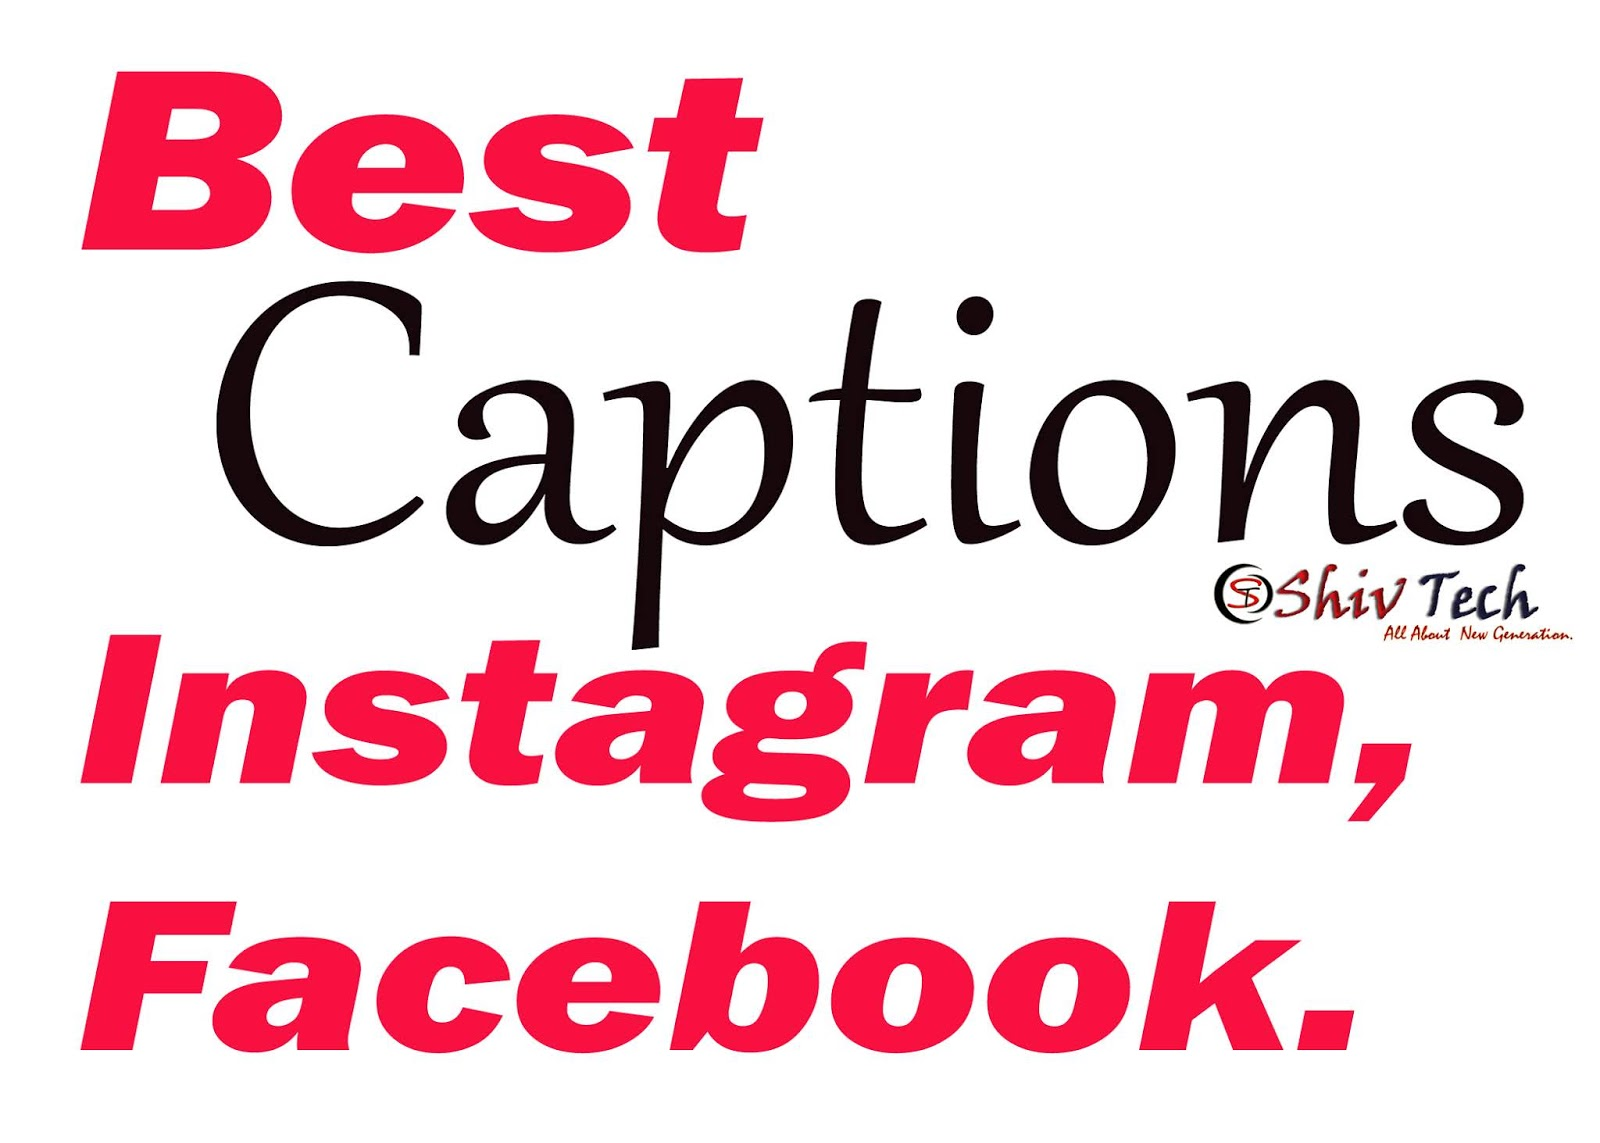 [Best] Captions for Instagram and Facebook Picture